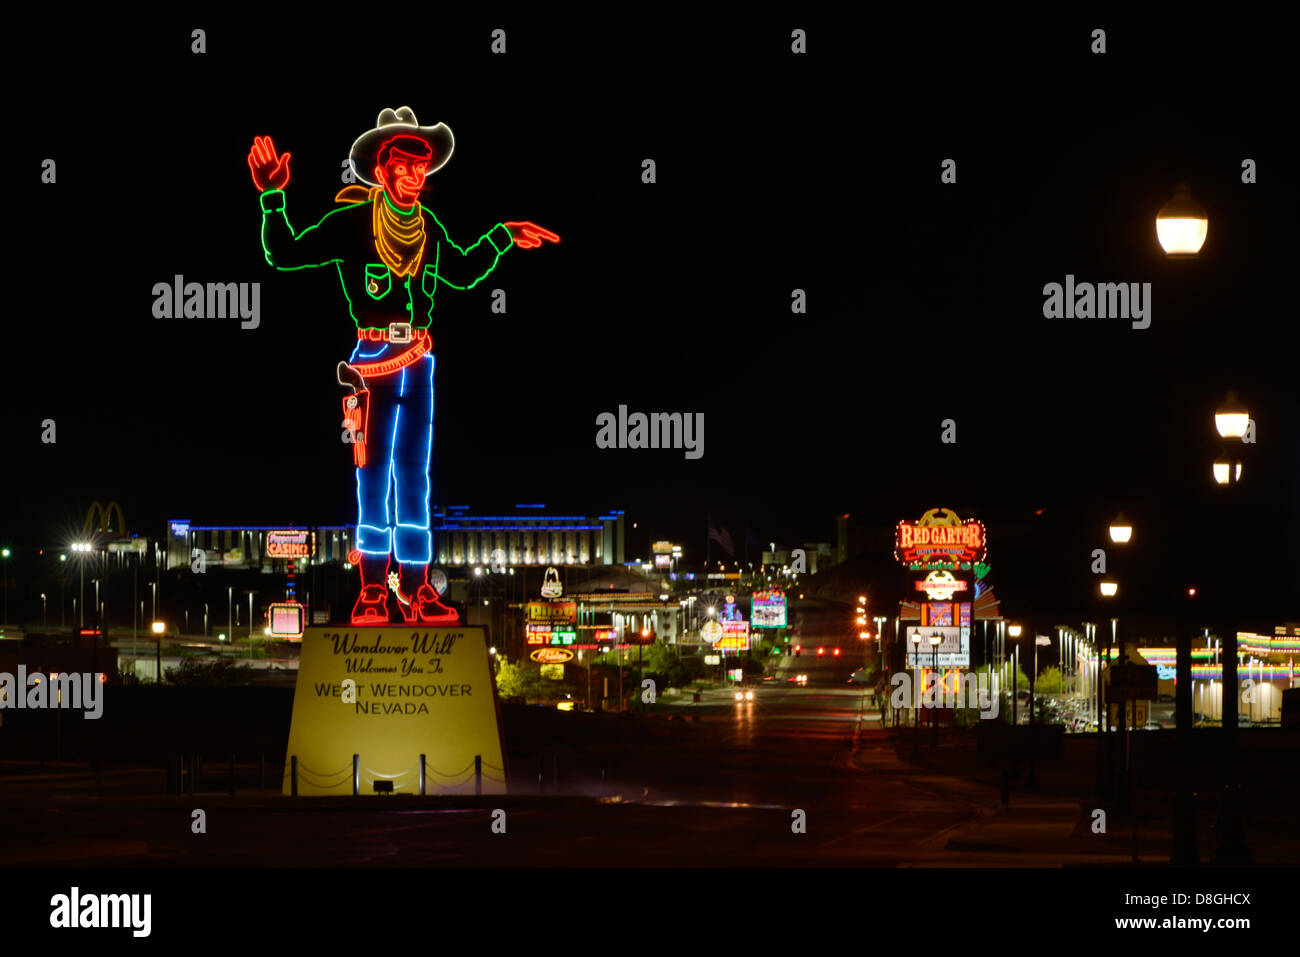 'Wendover Will' neon welcome sign at the edge of West Wendover, Nevada. - Stock Image